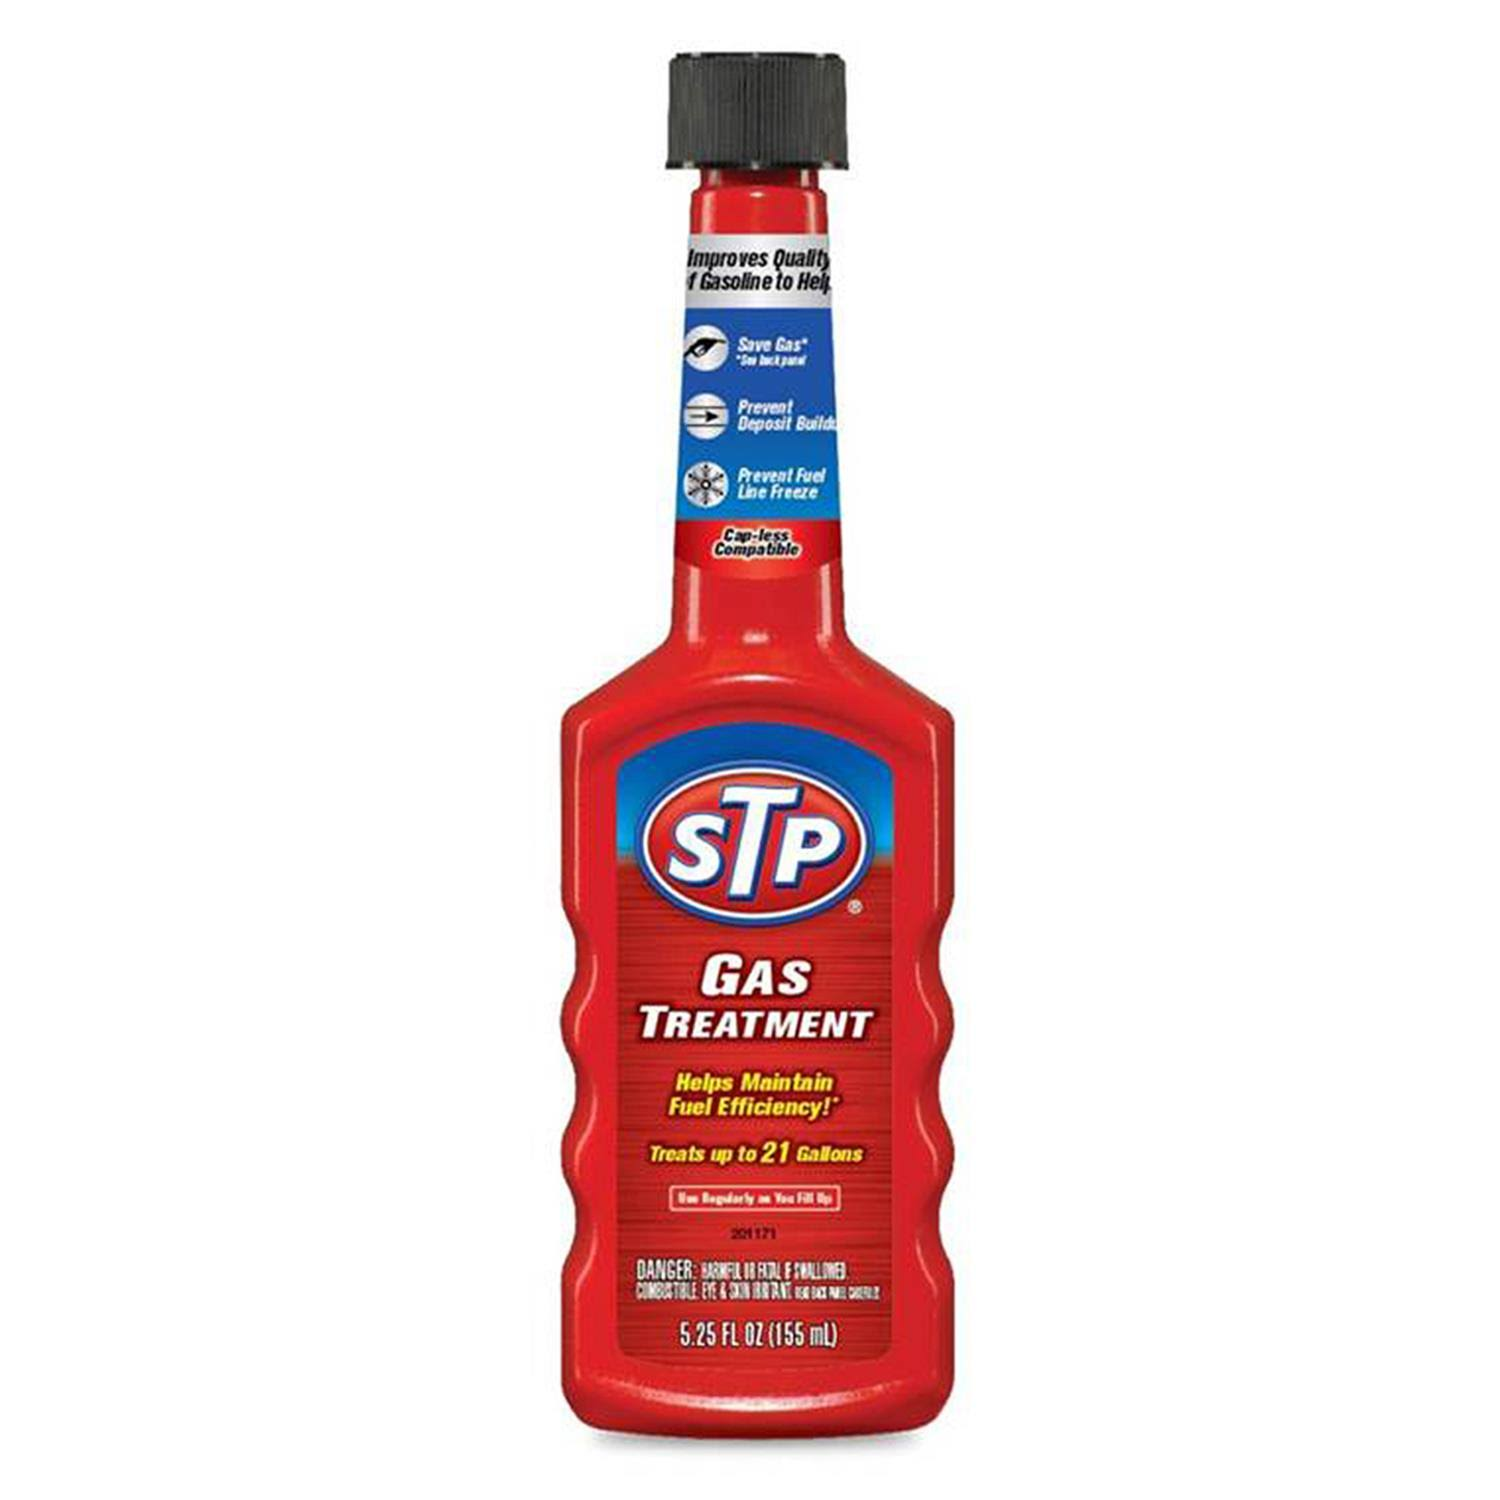 STP Gas Treatment - 5.25oz